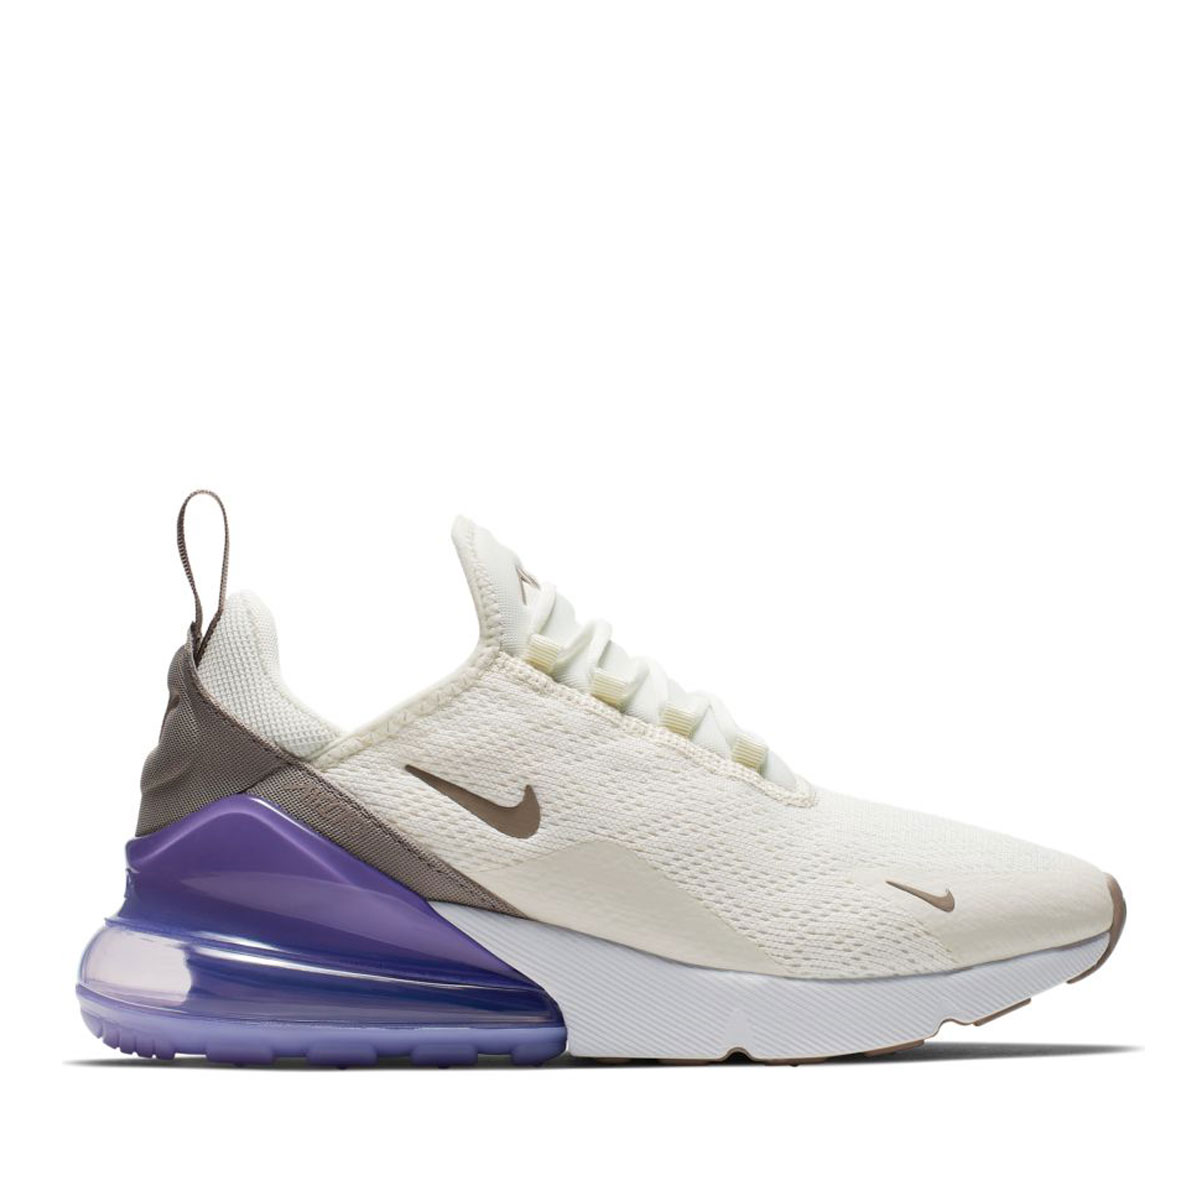 18d9283d8 Kinetics  NIKE W AIR MAX 270 (SAIL PUMICE-SPACE PURPLE-WHITE) (Nike women  Air Max 270)